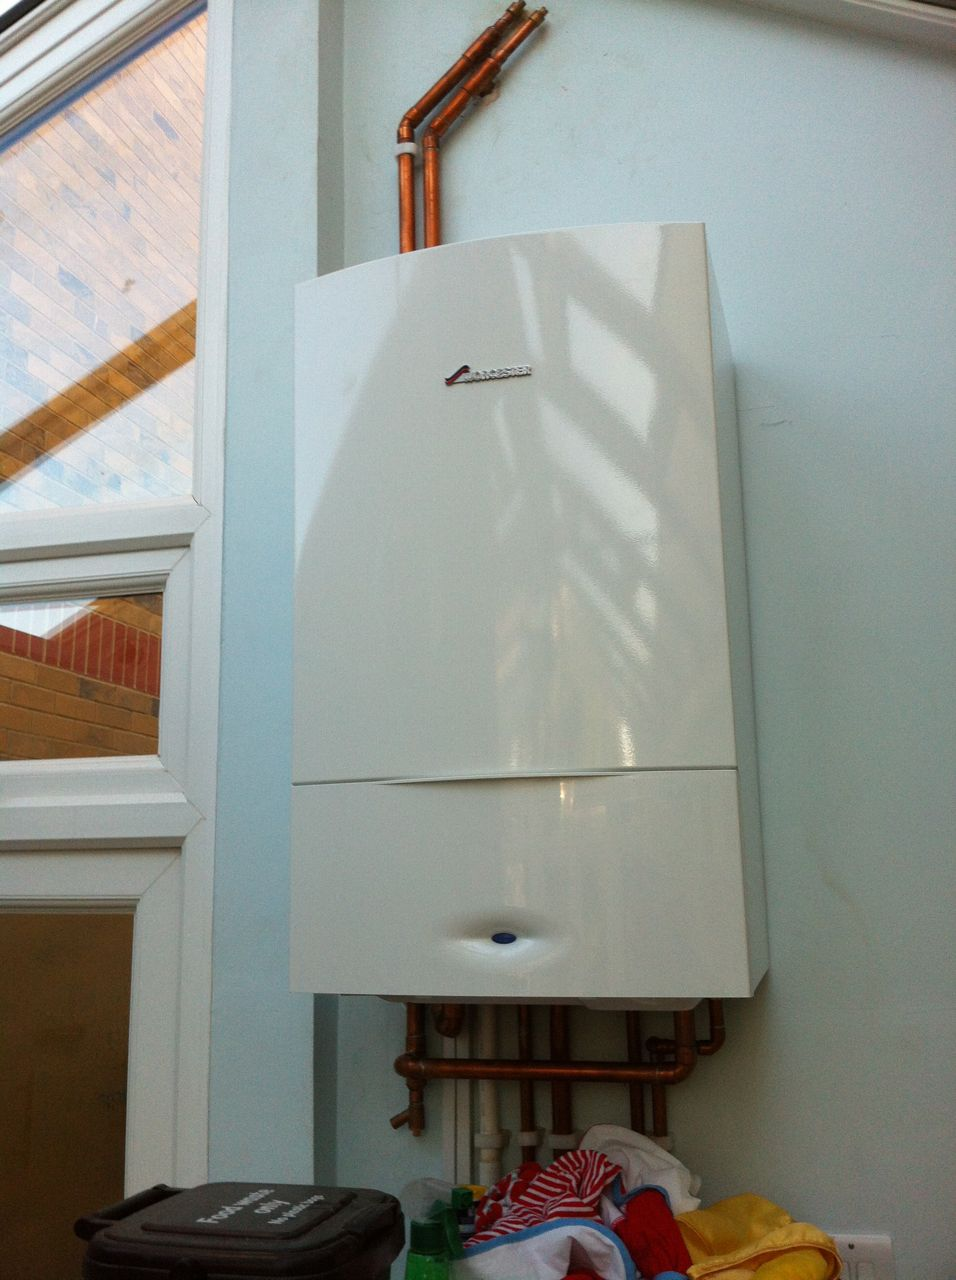 Weather compensation on a Bosch boiler in West Norwood - Hot Water ...